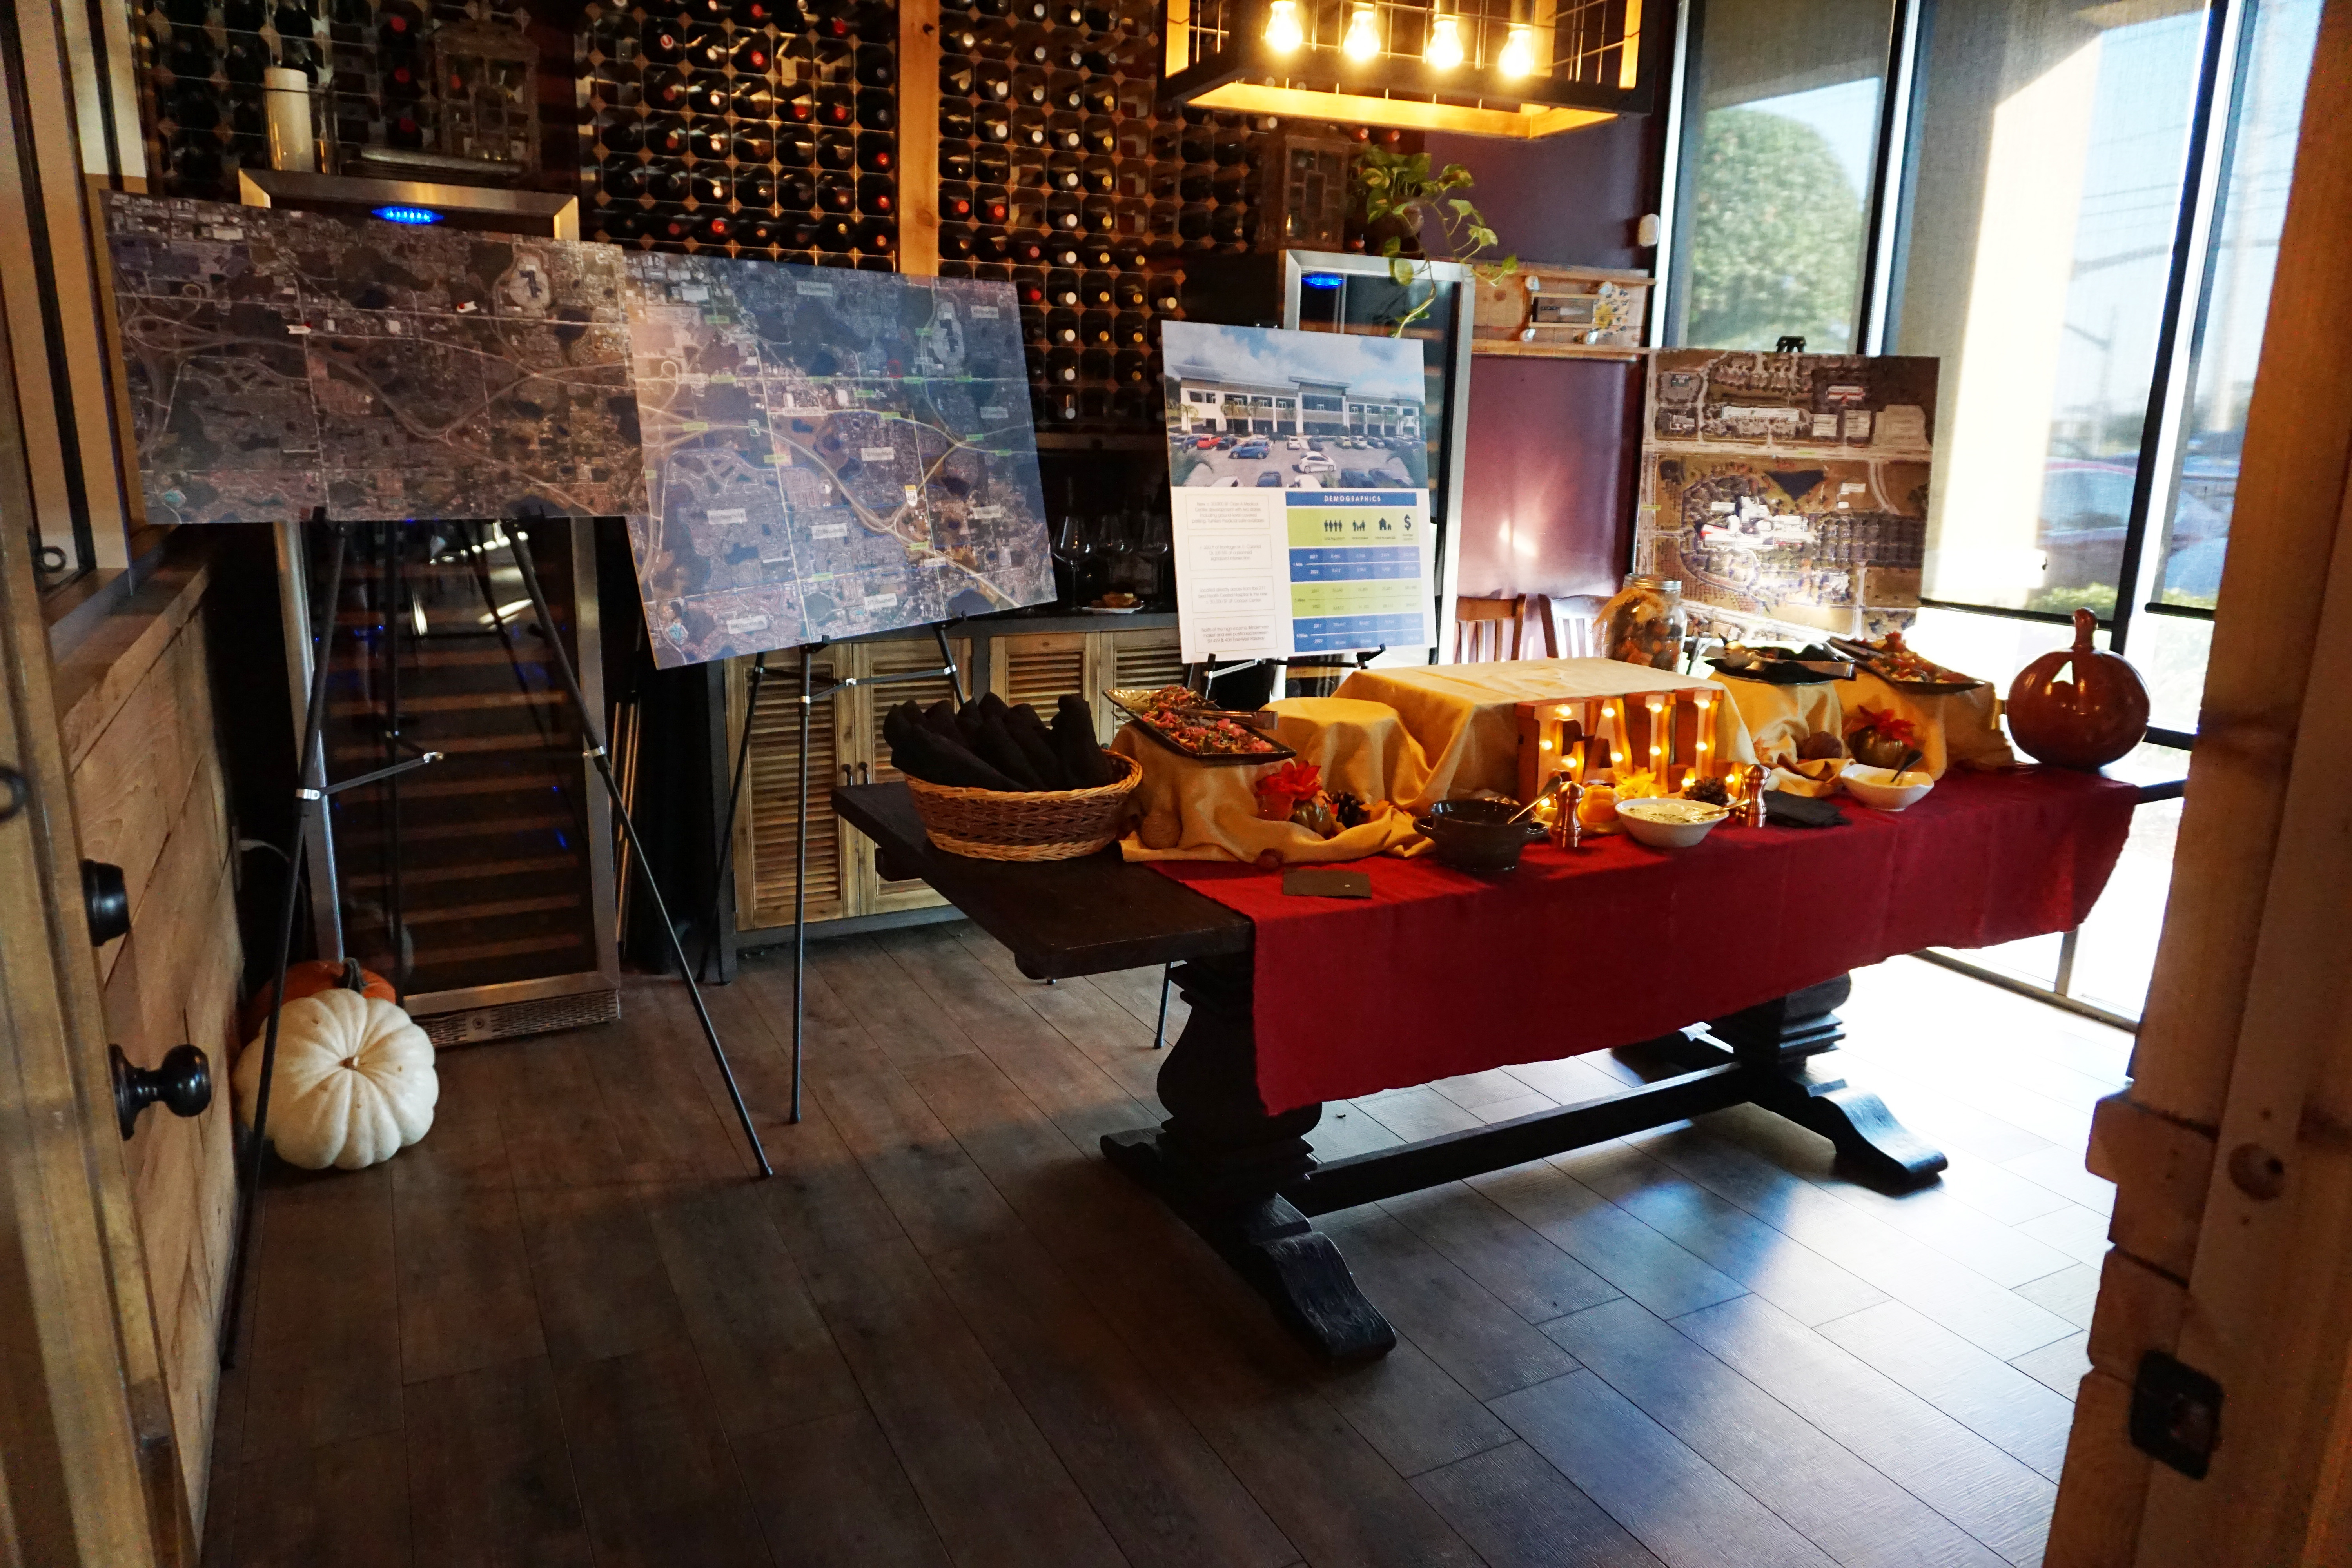 Image from the broker event that FCPG hosted to launch the Darren Medical Center.